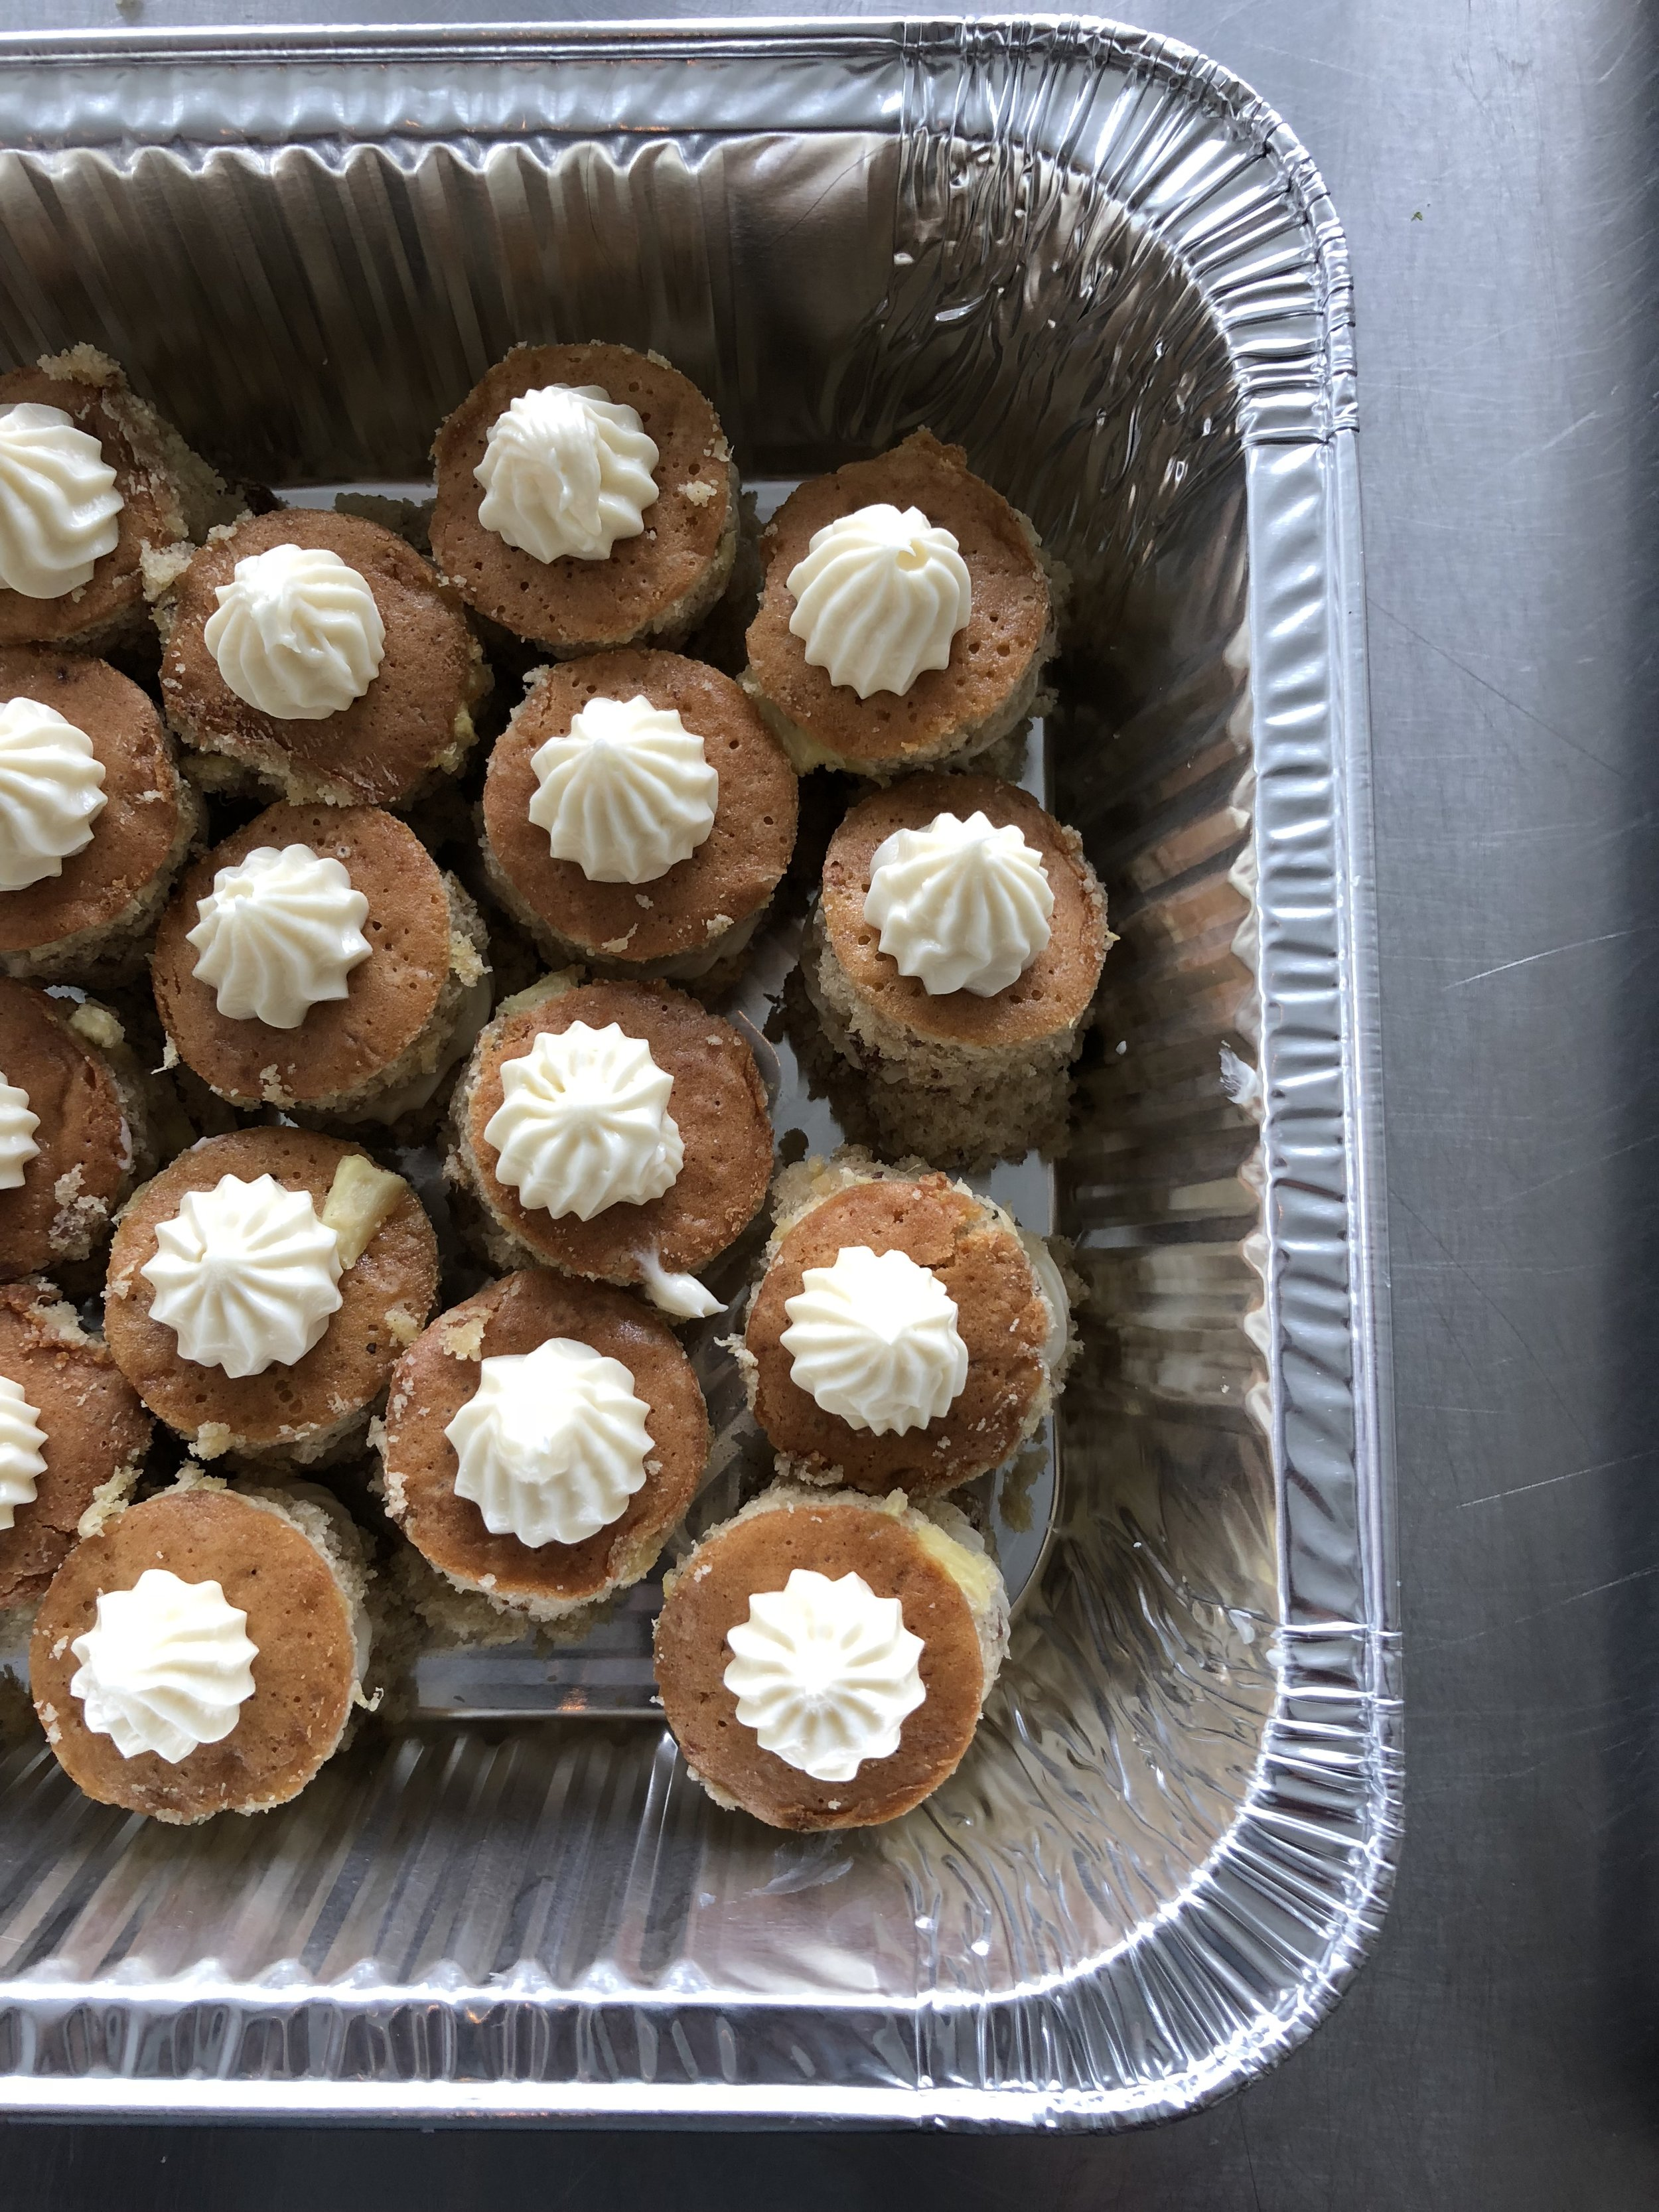 A pick-up version of the recipe we love to use for events! Same premise, just cut small circles out of the sheet cake before layering.